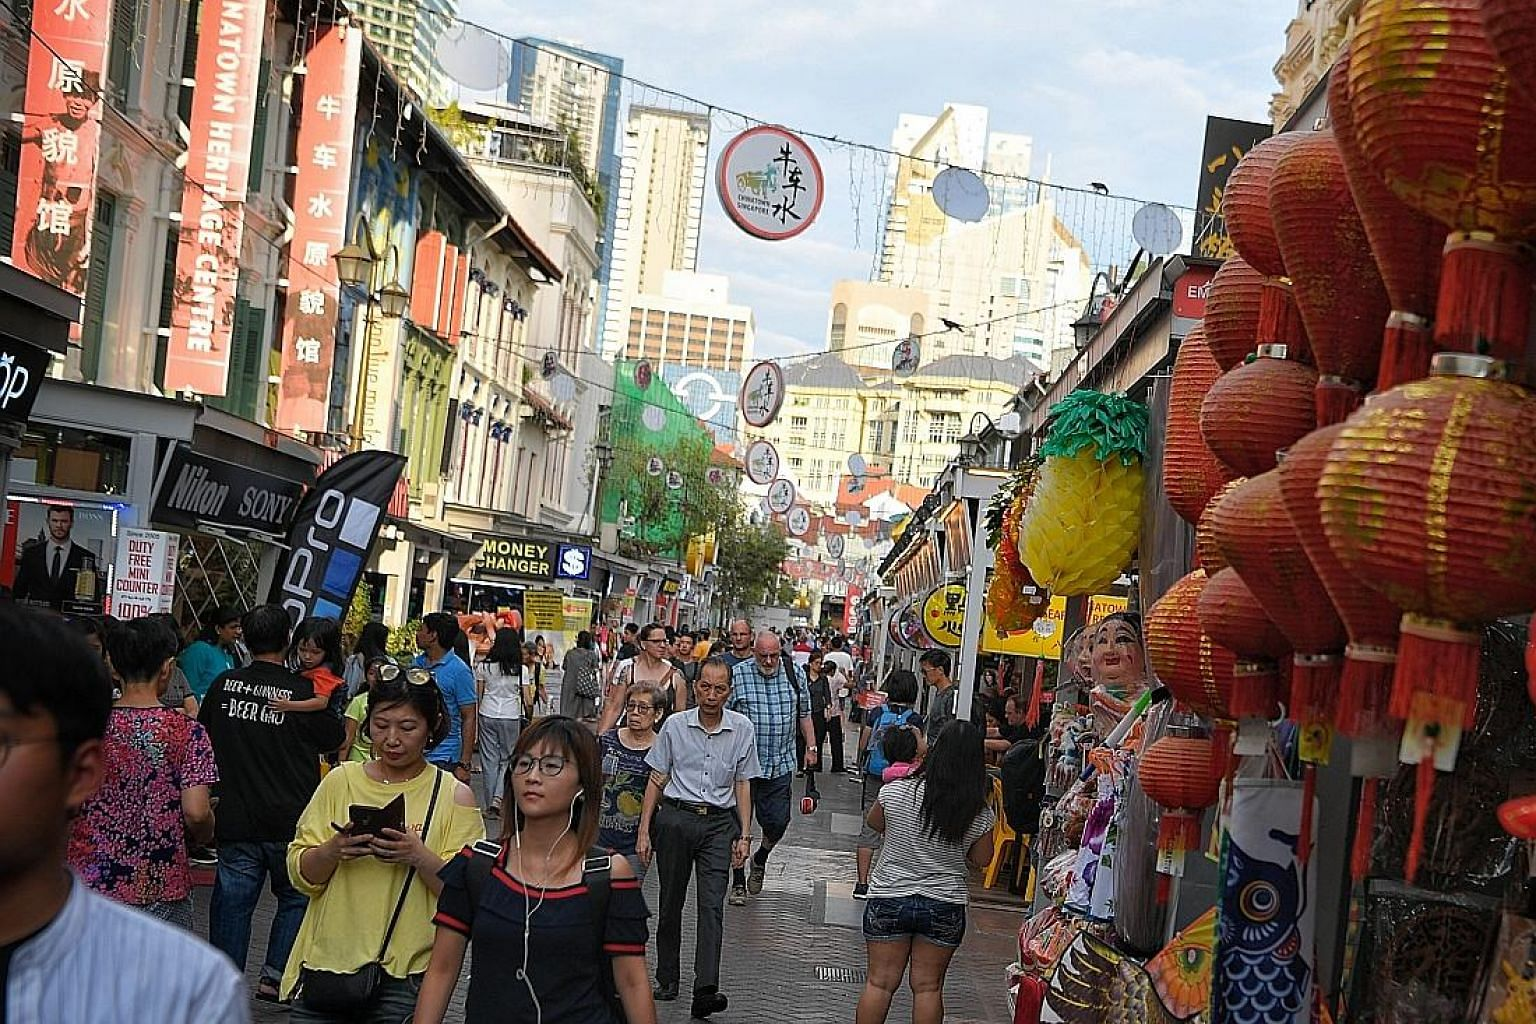 Sago Lane is now a bustling riot of touristy wares, sounds, aromas and colours, where tourists flock to buy souvenirs, try local food and take photographs.